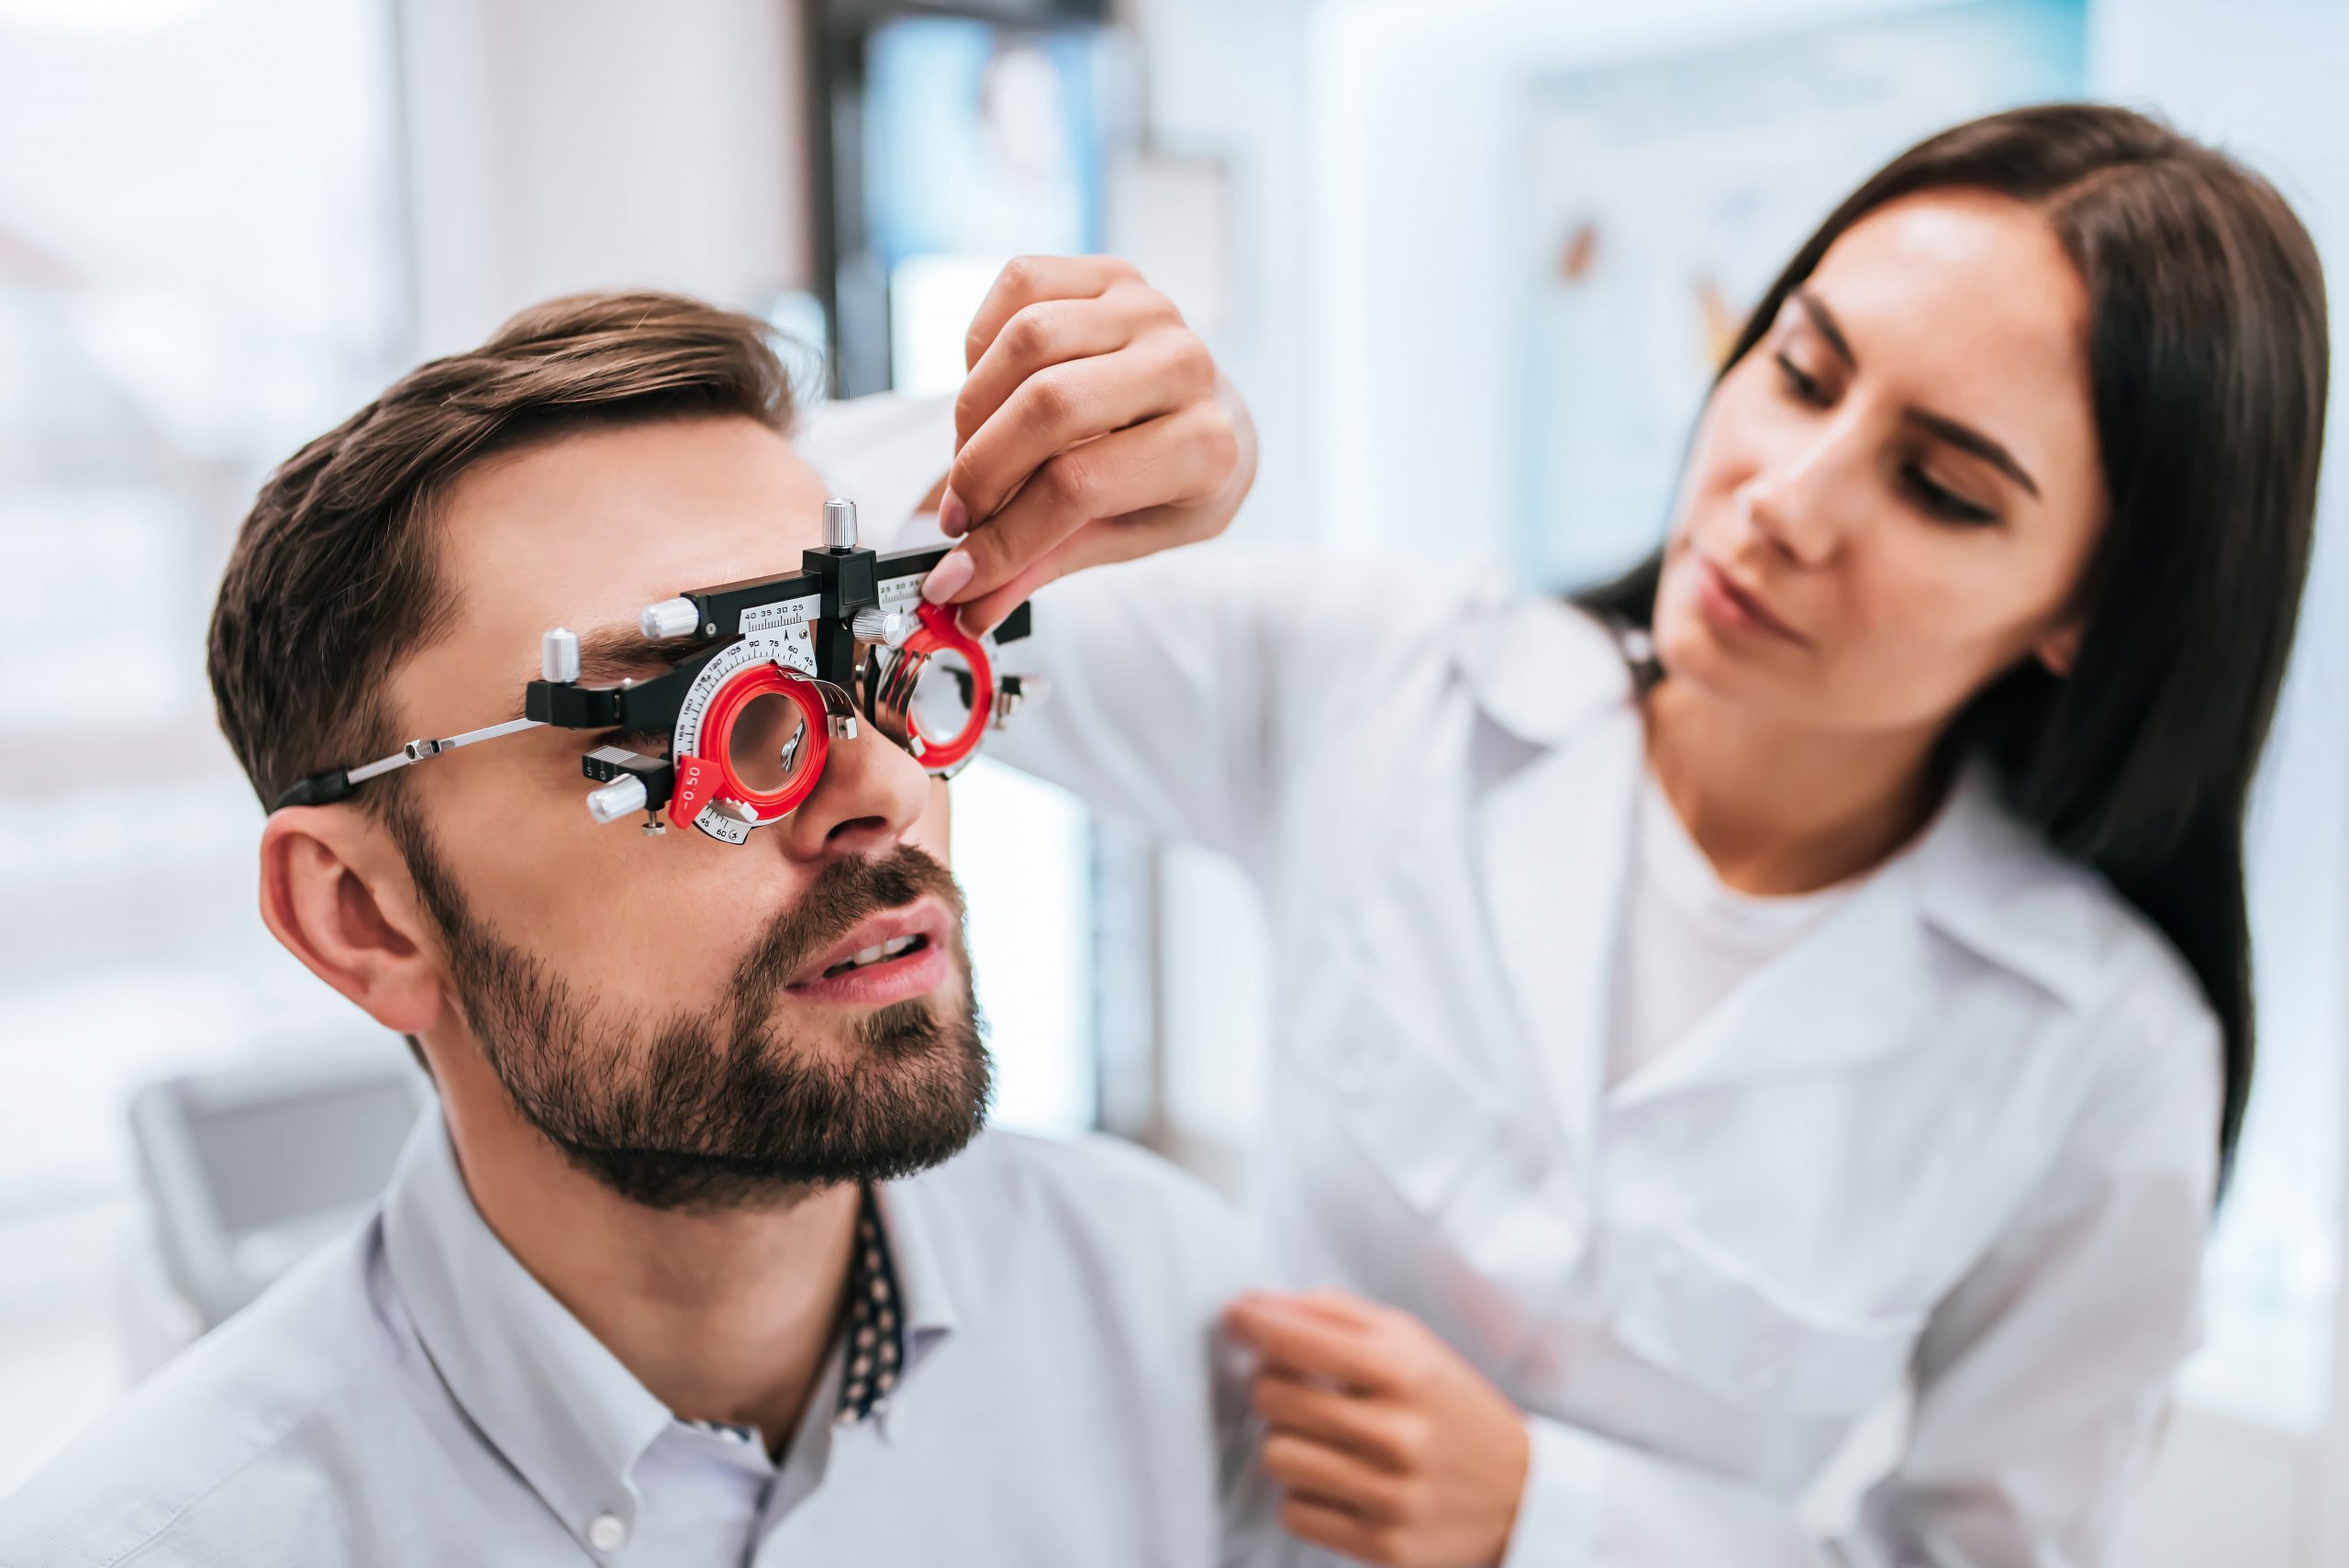 Man has his vision tested by female doctor